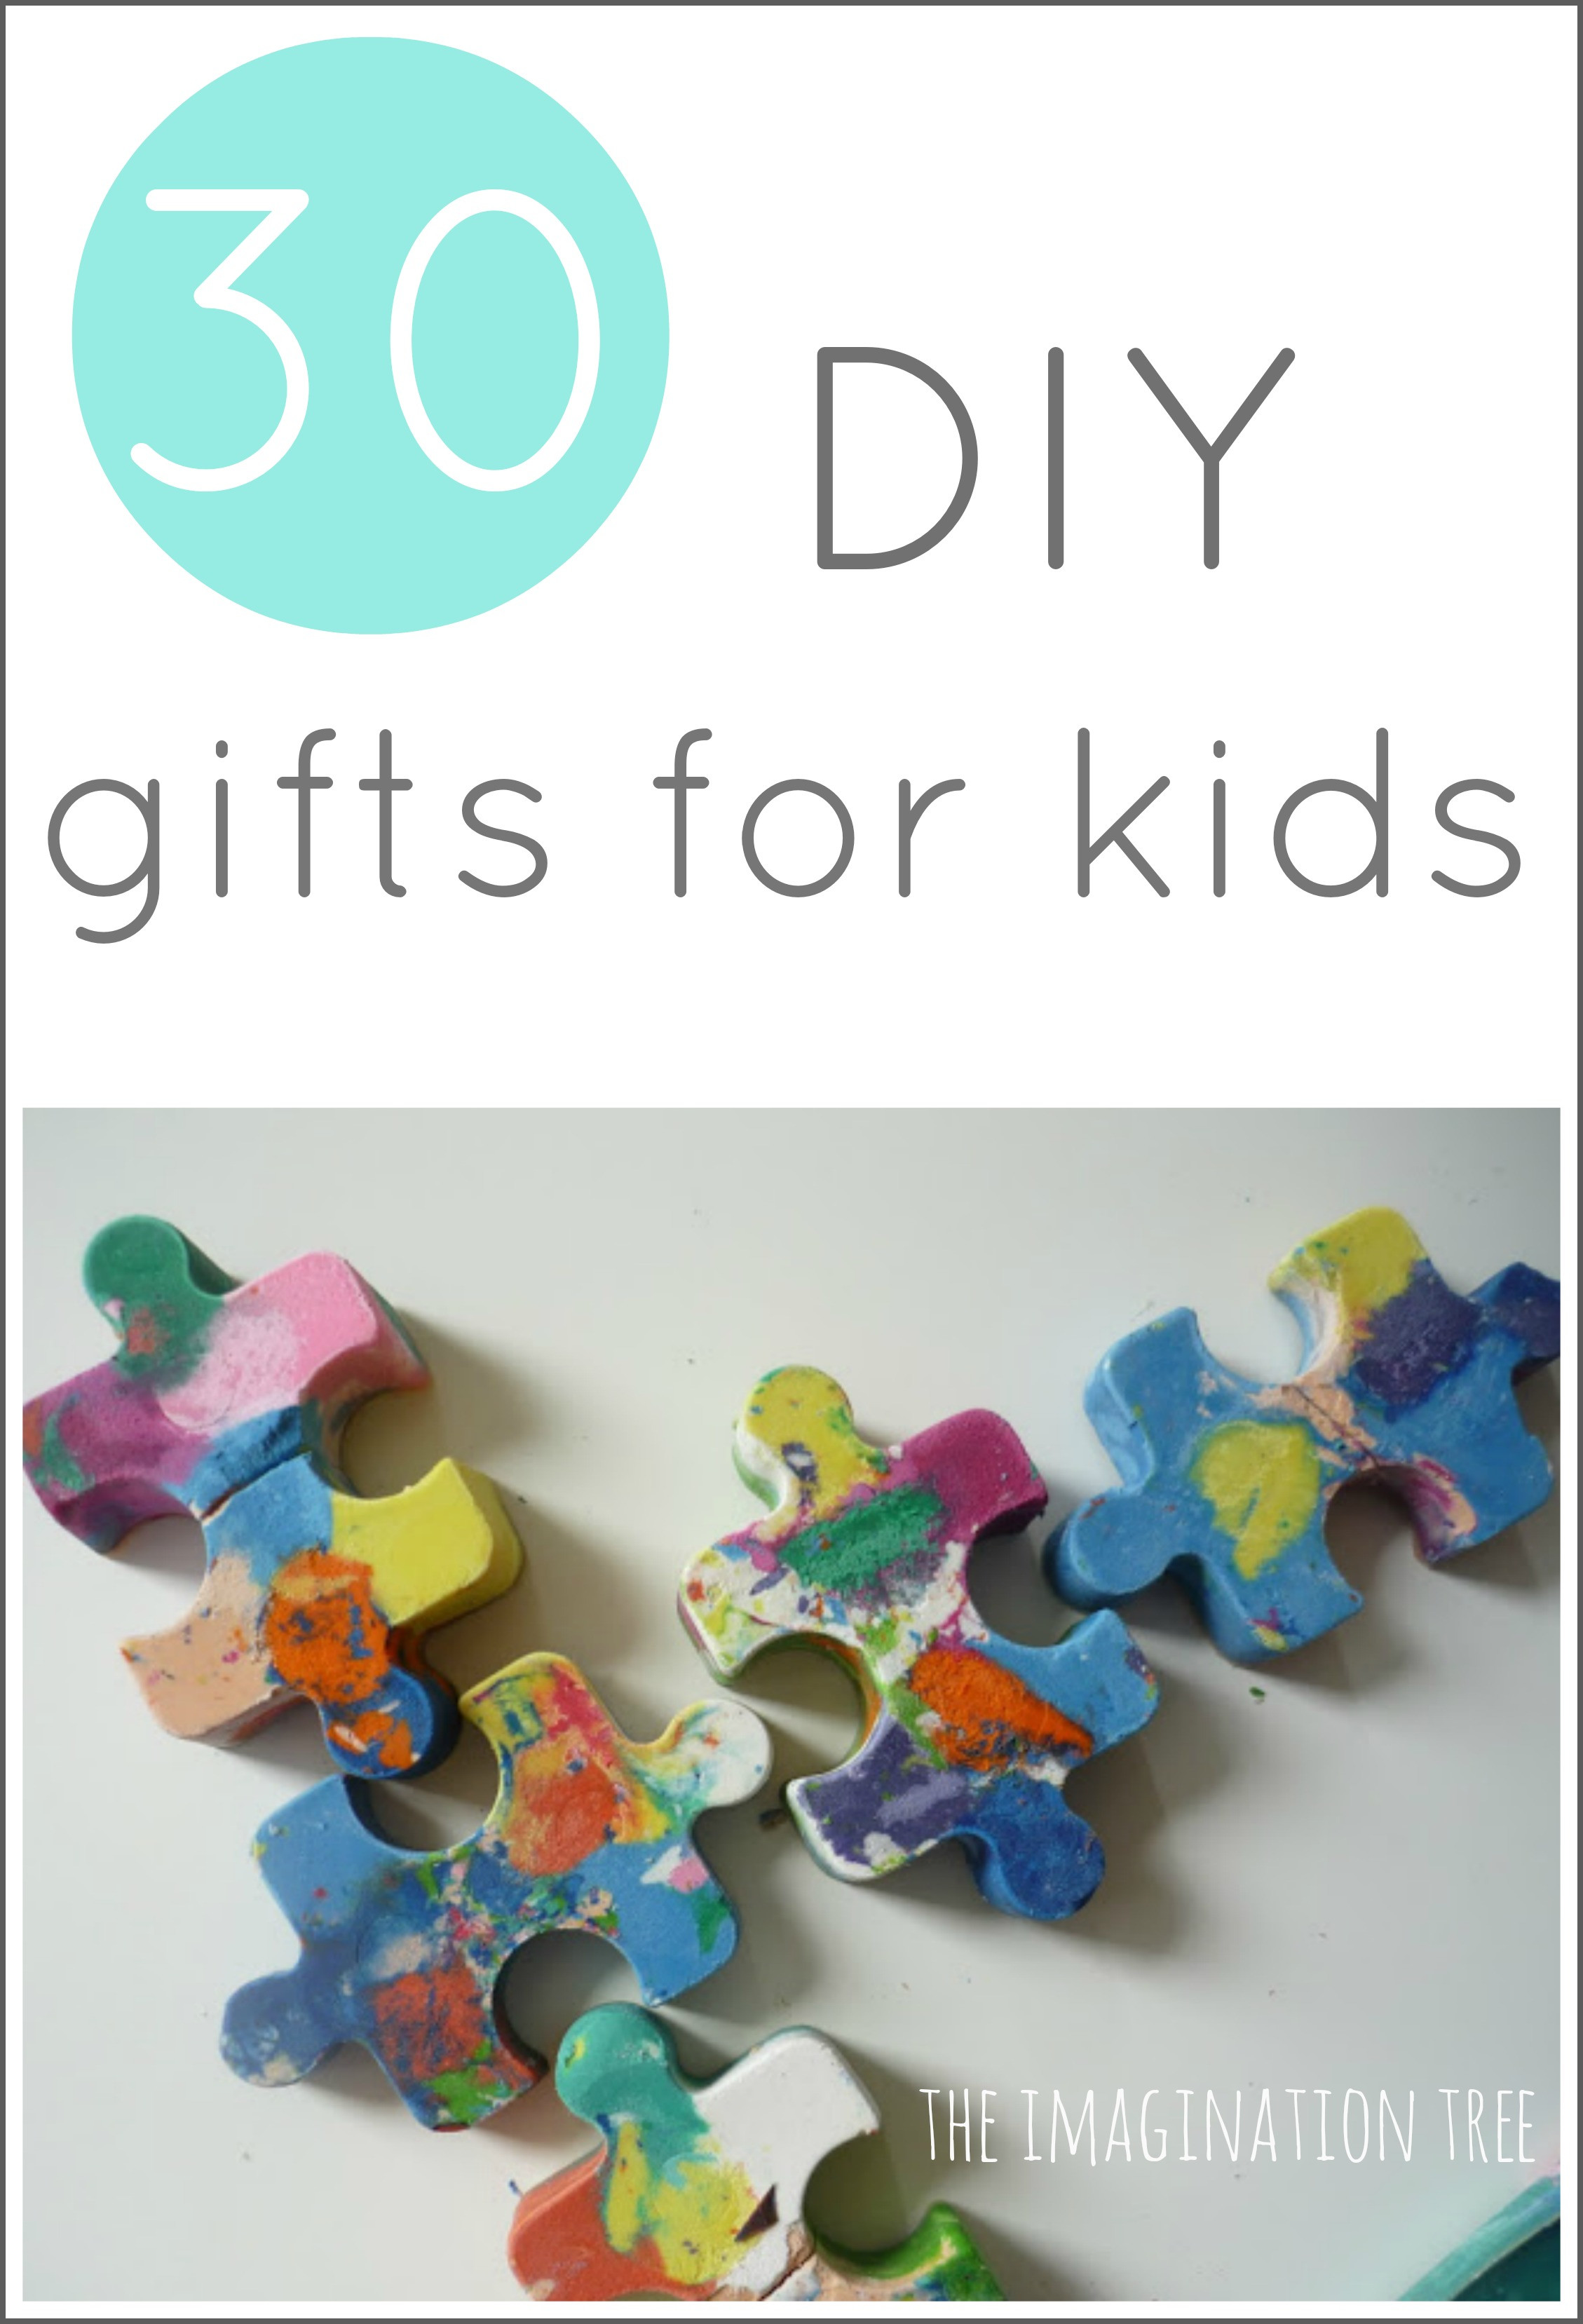 Best ideas about DIY Kids Gifts . Save or Pin 30 DIY Gifts to Make for Kids The Imagination Tree Now.